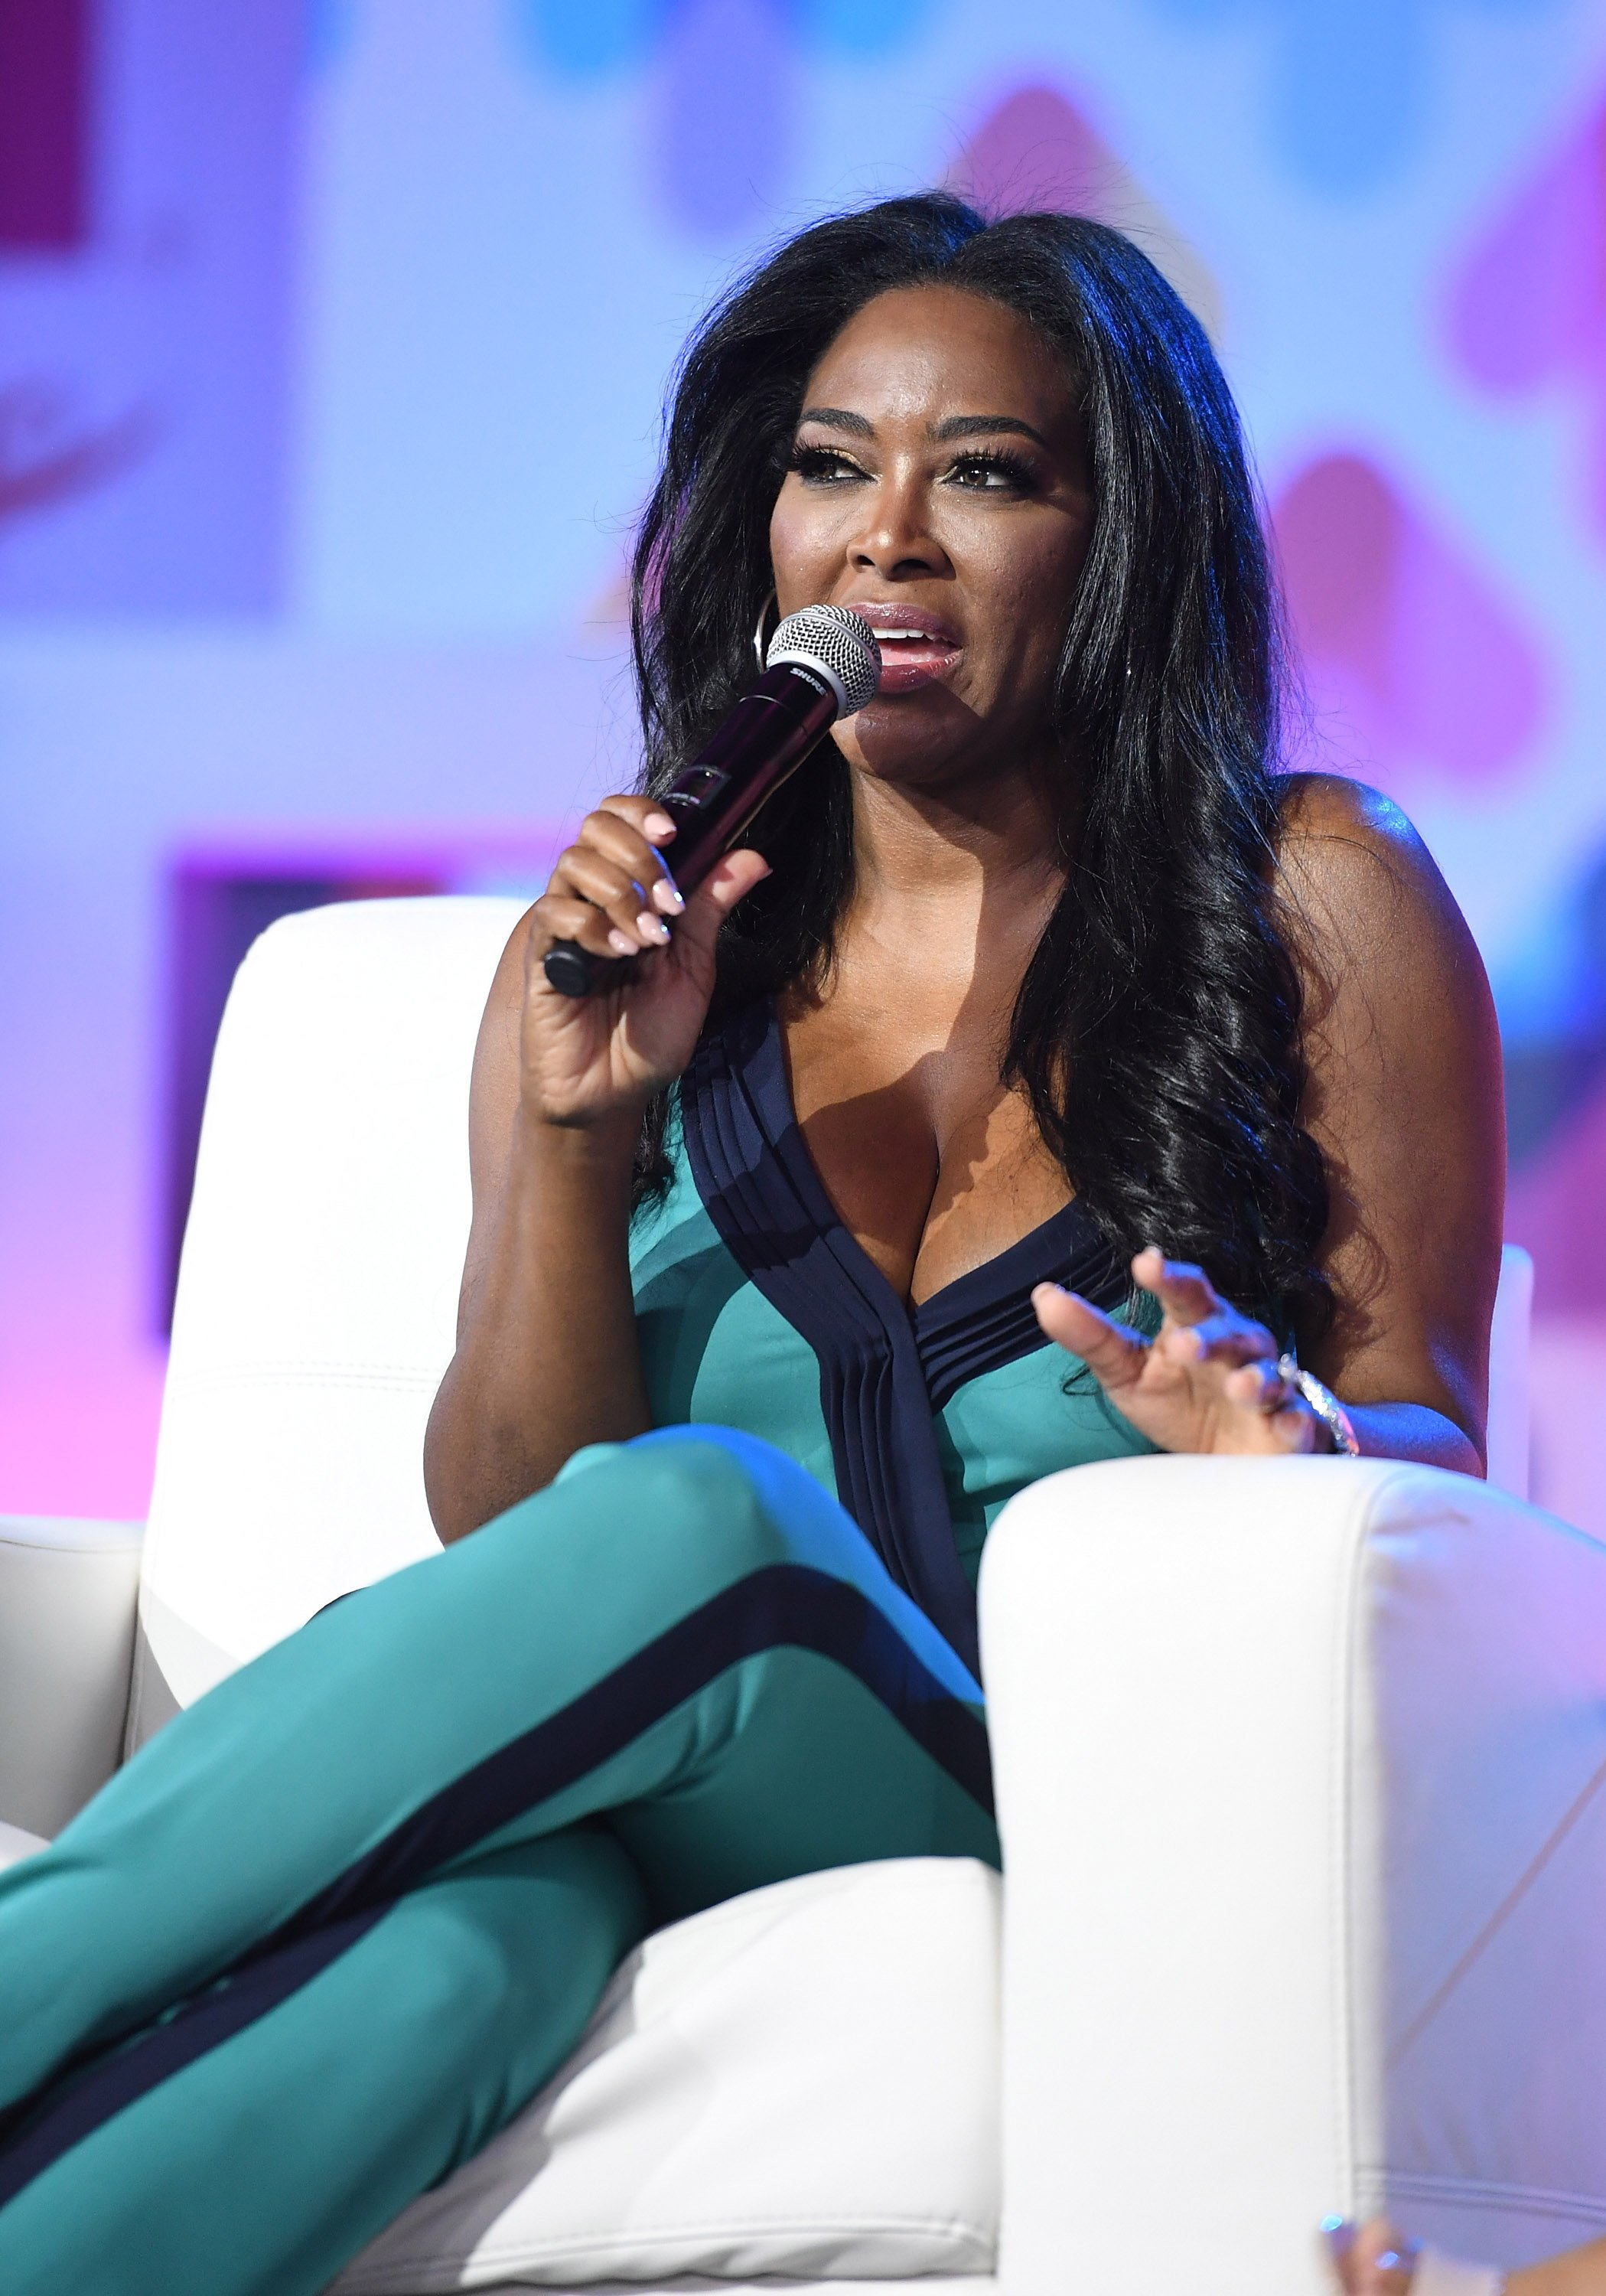 Kenya Moore at the ESSENCE Festival on June 30, 2017 in Louisiana | Photo: Getty Images